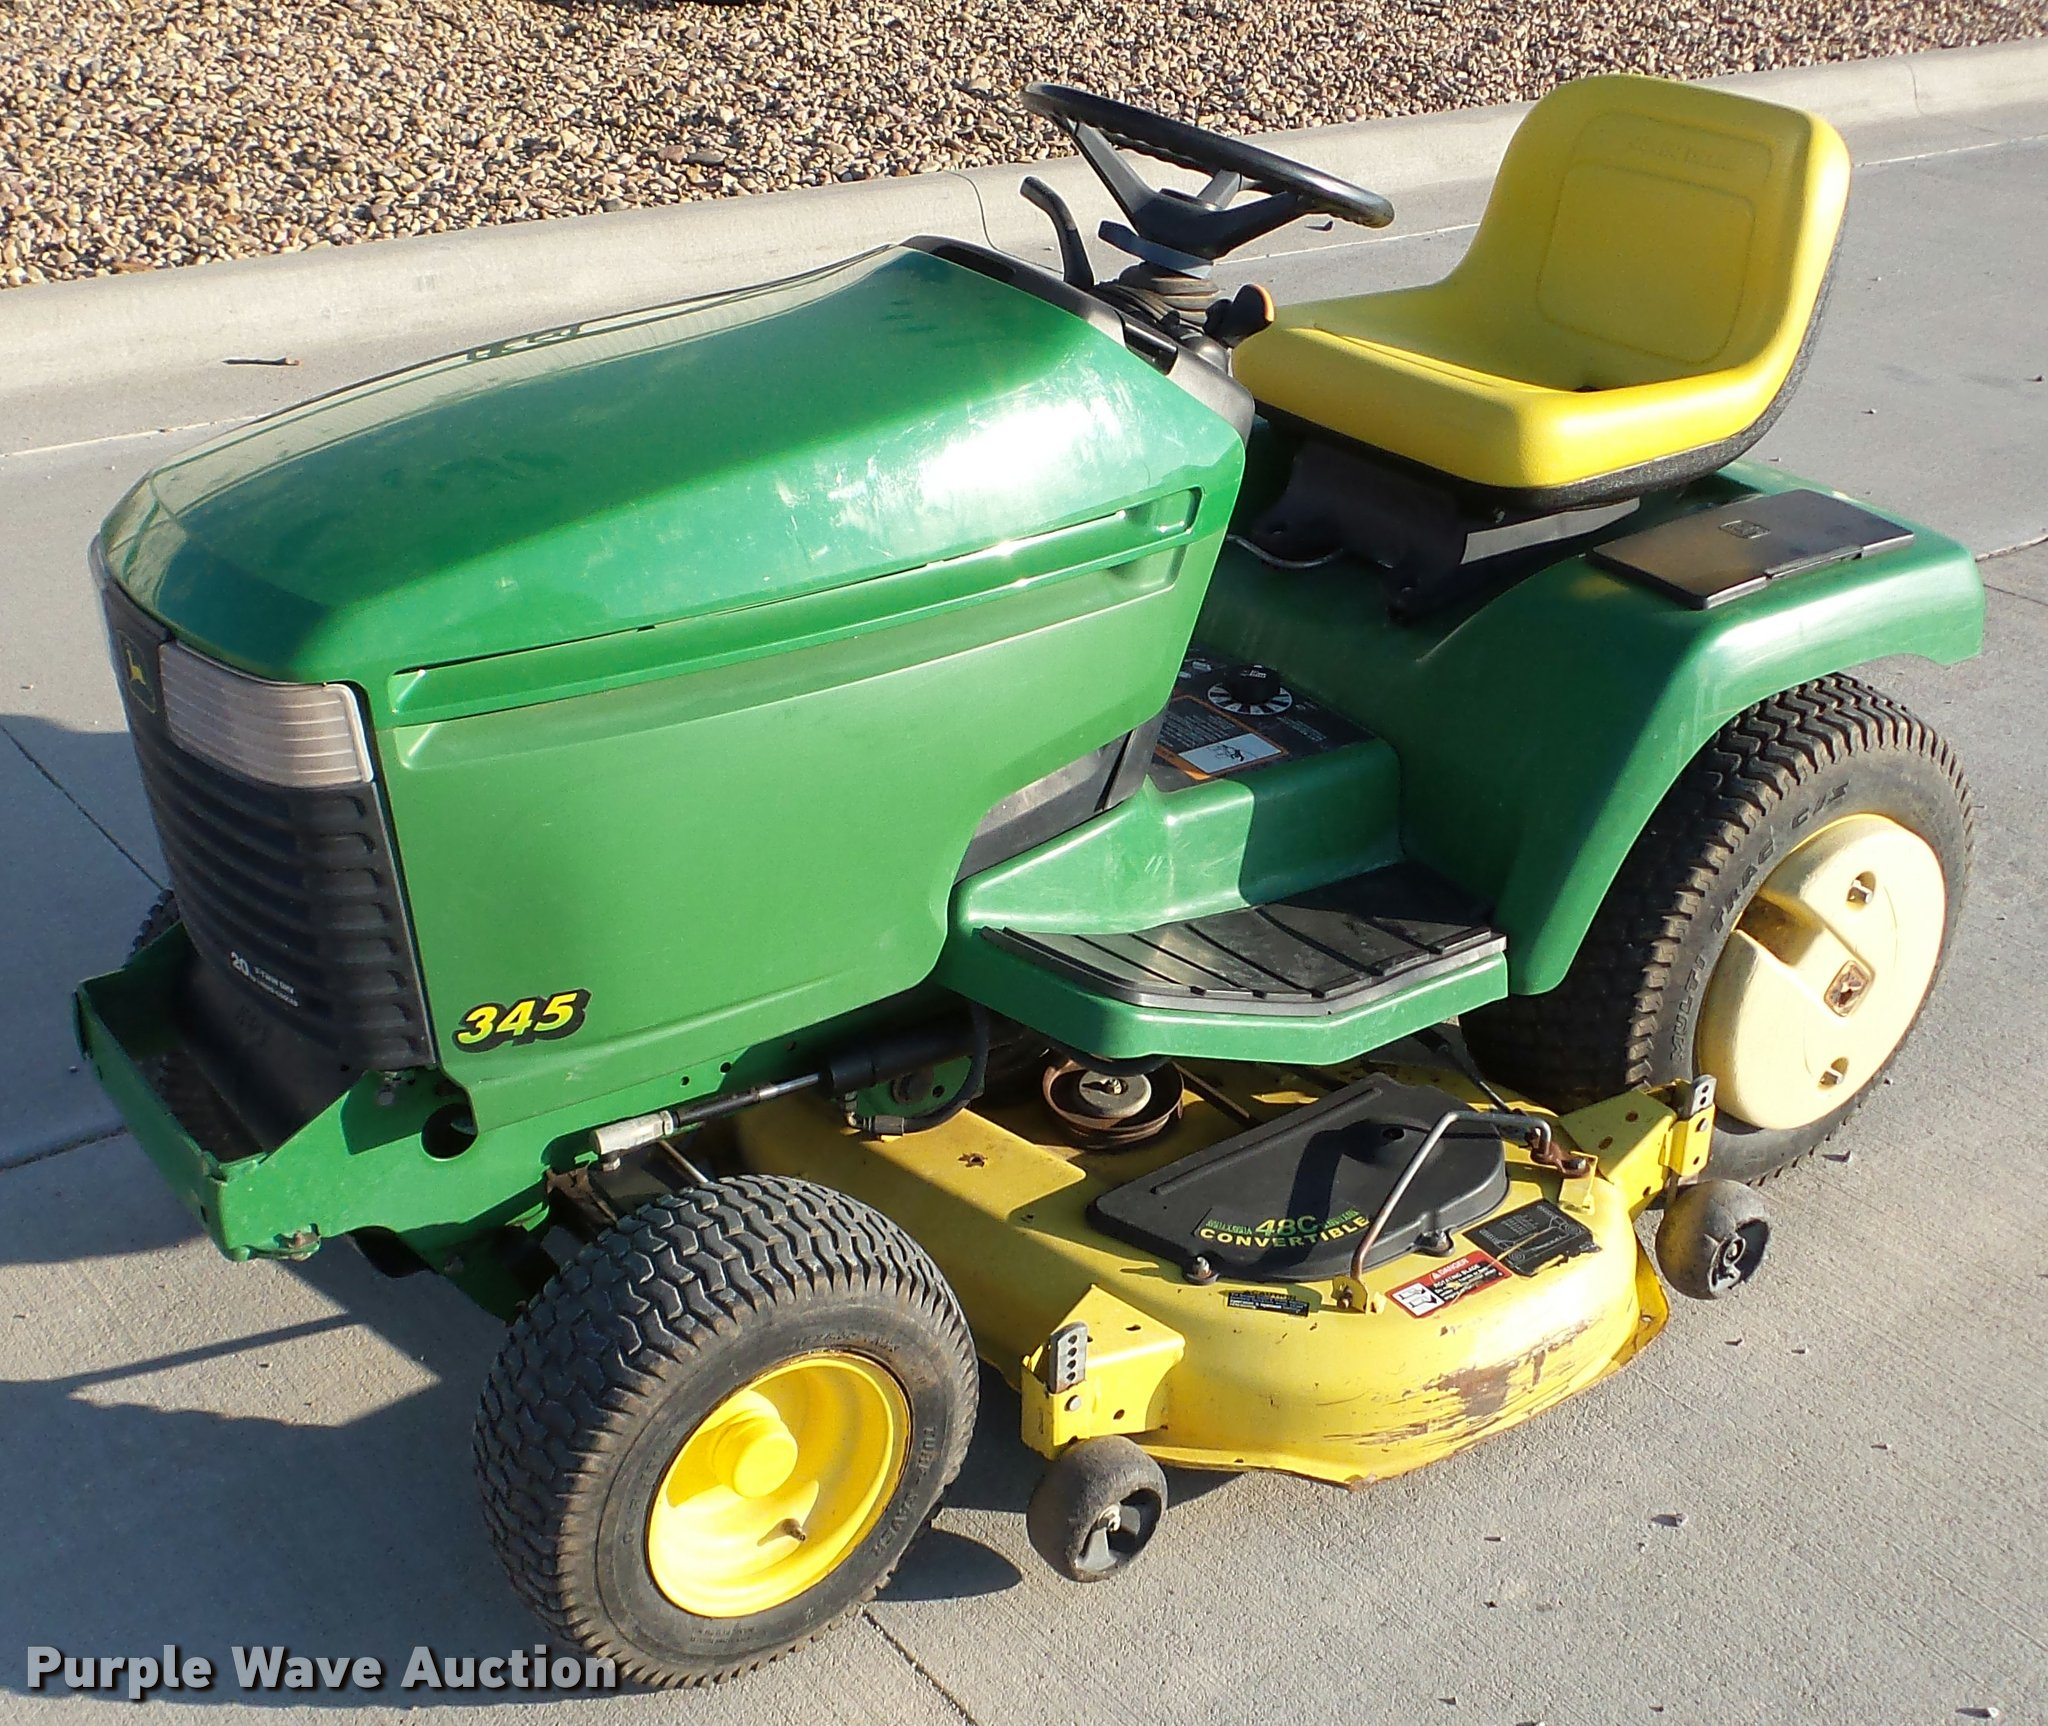 DA2906 image for item DA2906 John Deere 345 lawn mower